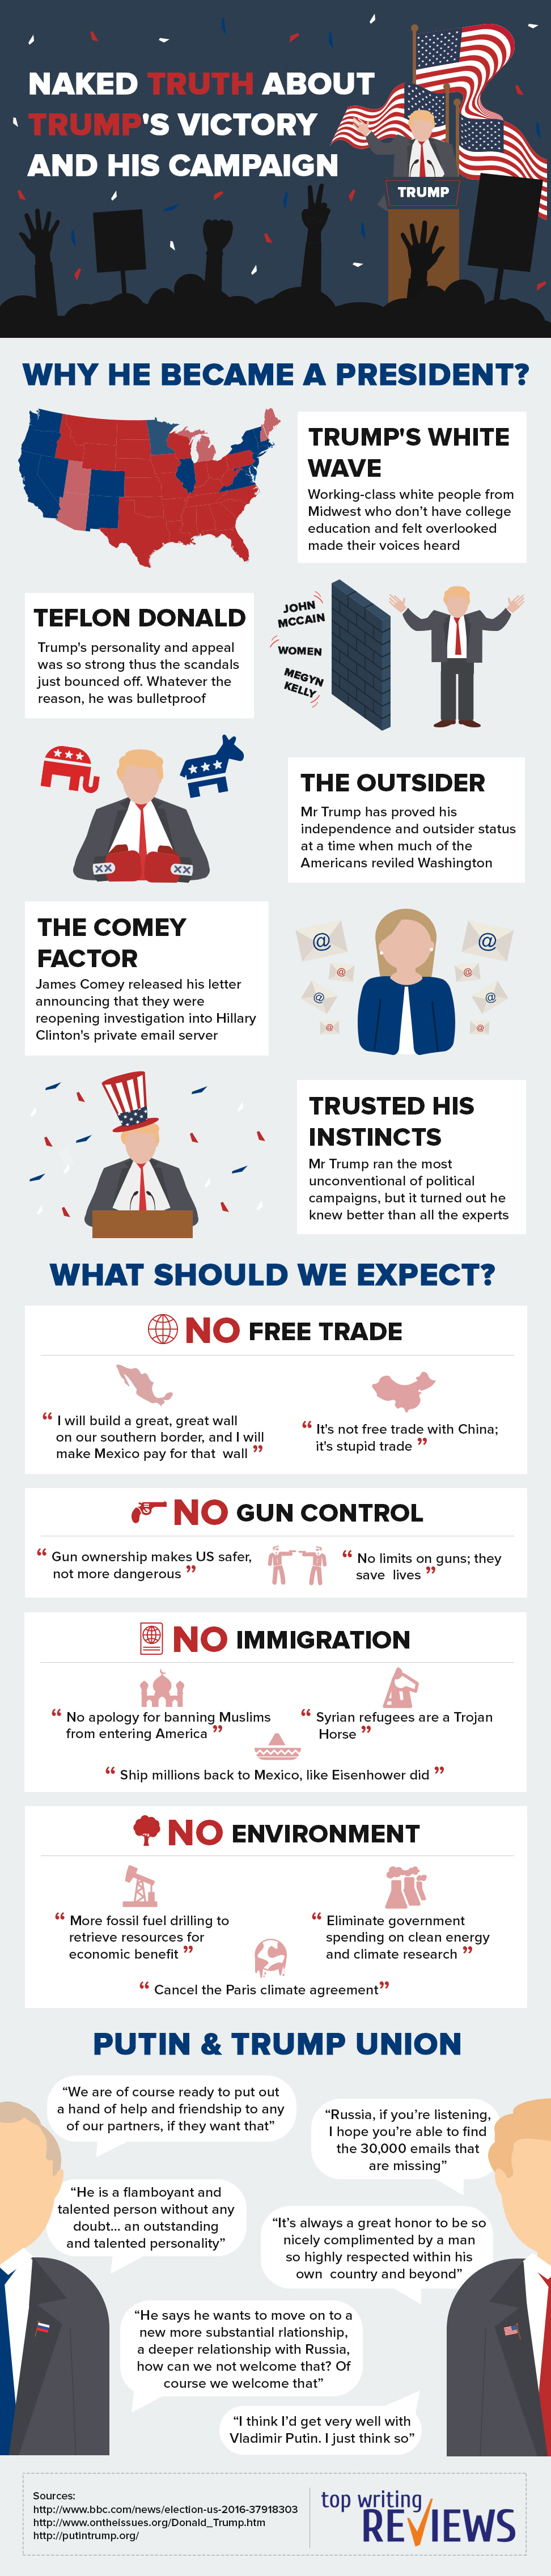 How Trump was elected and what to expect infographic